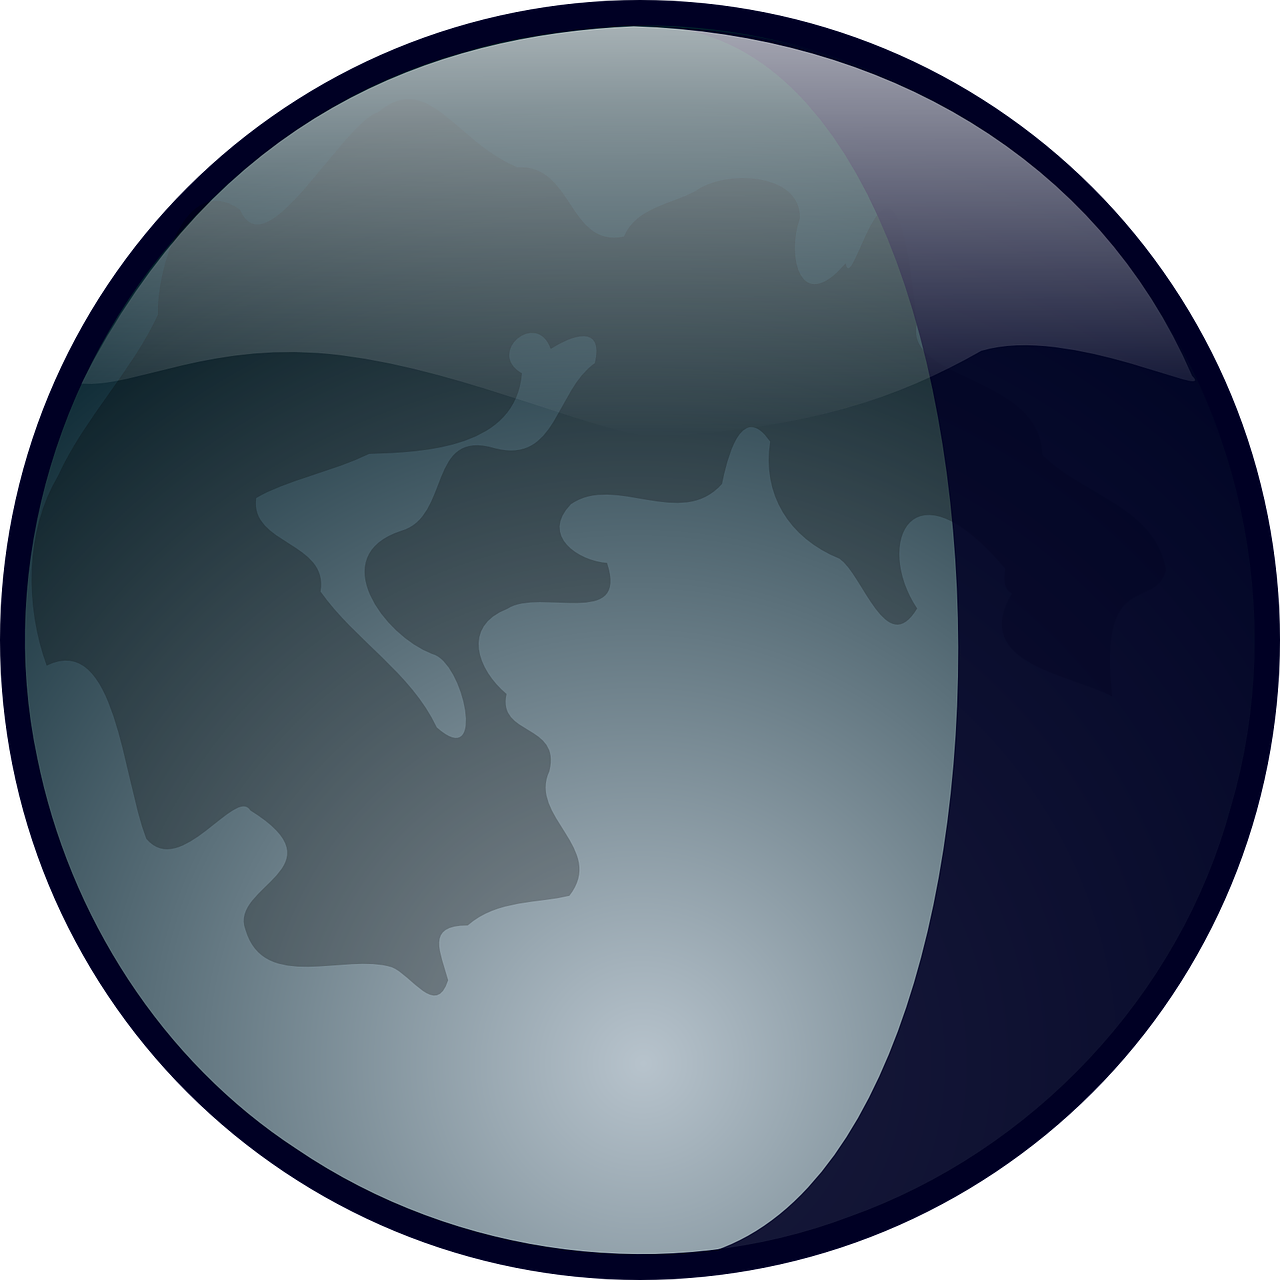 moon,earth,view,global,astronomy,science,phase,free vector graphics,free pictures, free photos, free images, royalty free, free illustrations, public domain